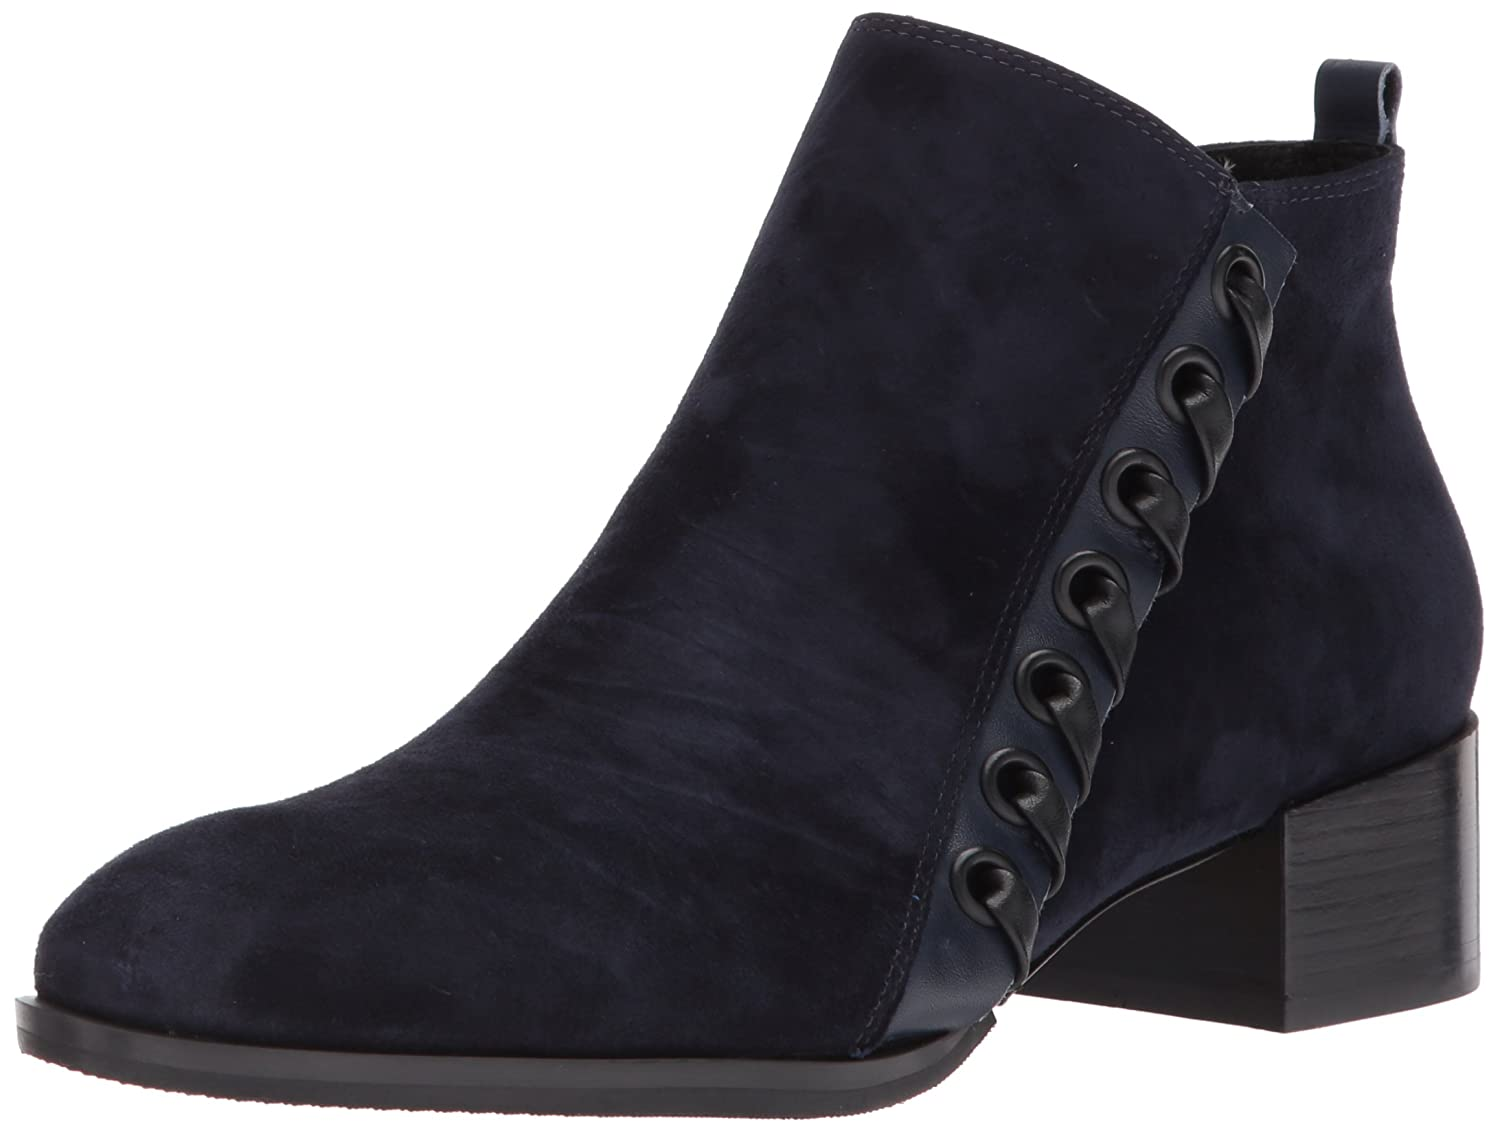 Donald Boot J Pliner Women's Avea Ankle Boot Donald B06XPLXNJL 11 B(M) US|Orion 7763ba